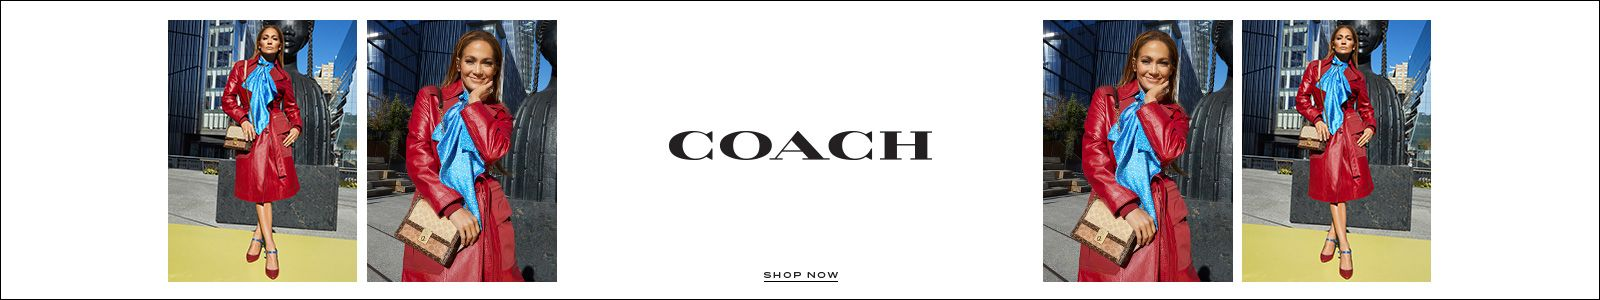 Coach, Shop Now